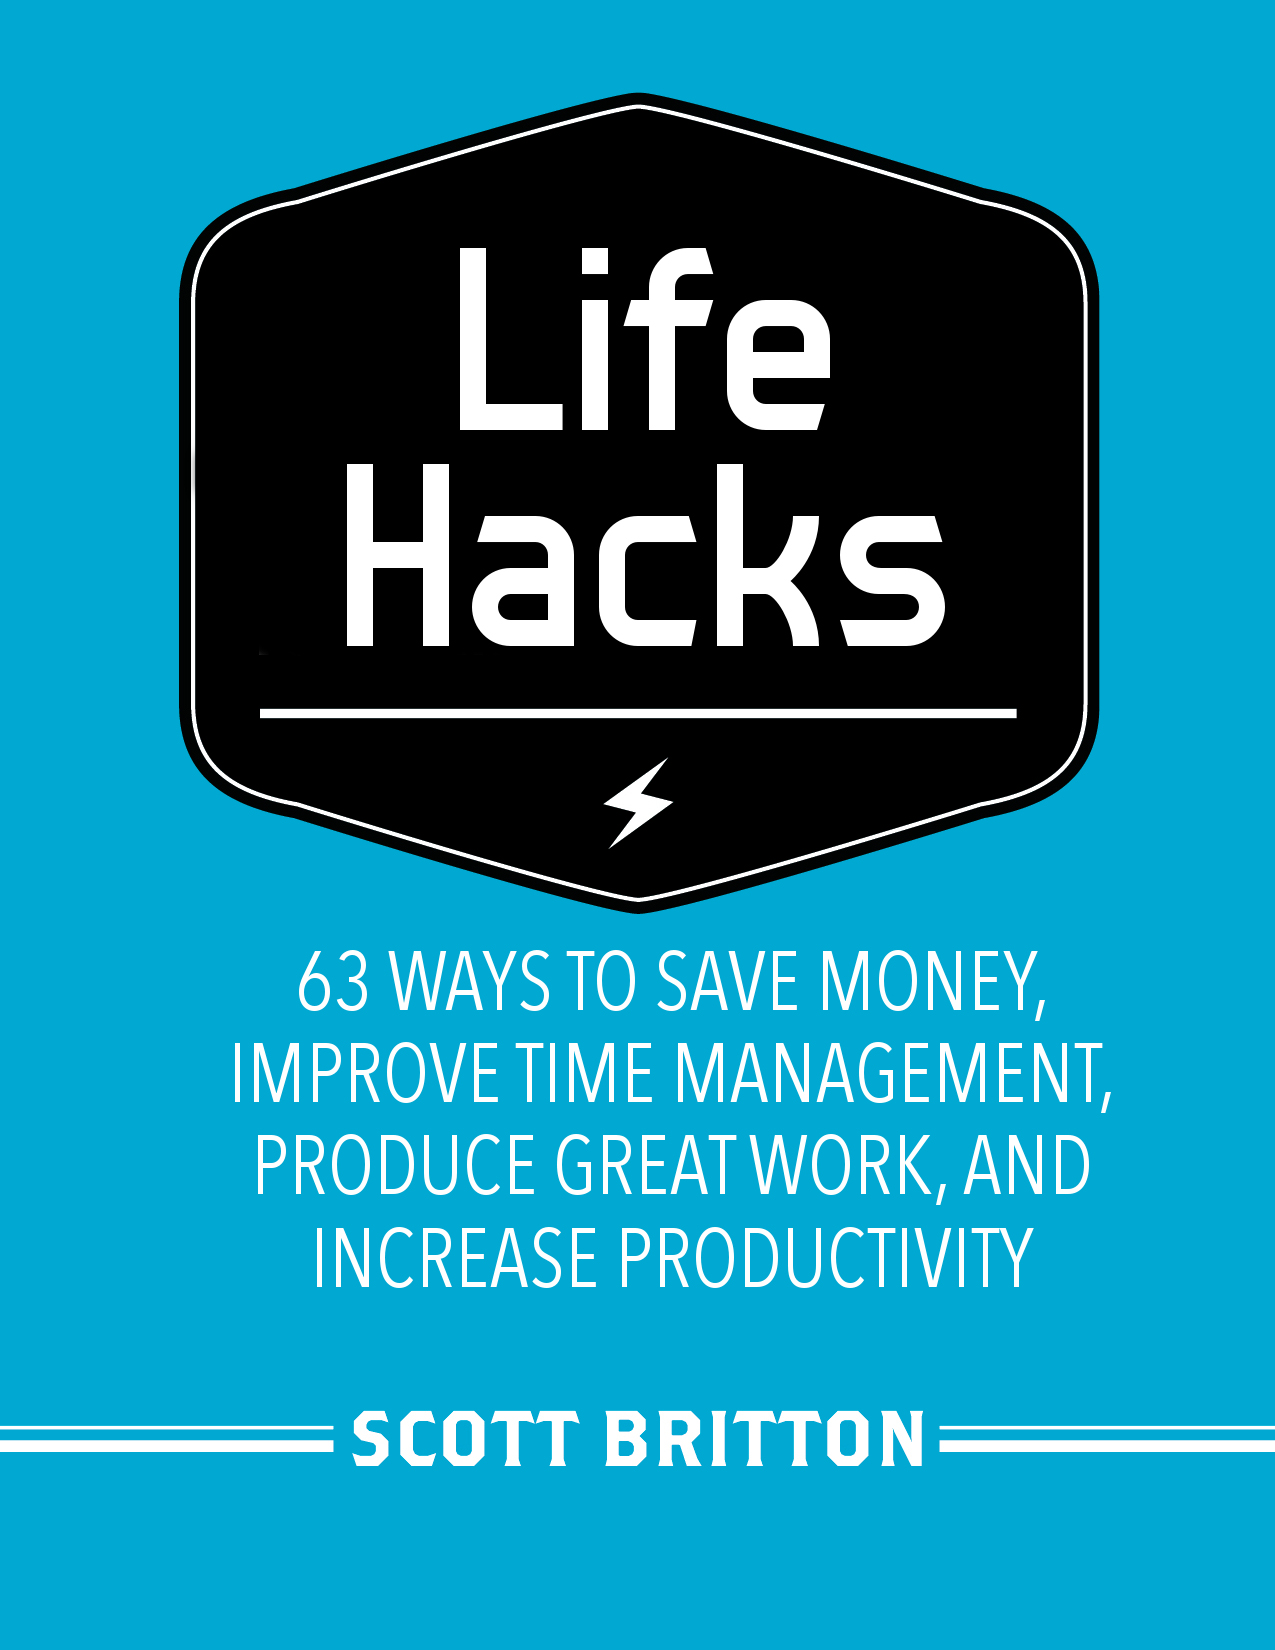 If You'd Like To See How I Marketed This Book To Become A Number #1 Best  Seller On Amazon, Check Out This Post I Wrote About How To Get An Ebook To